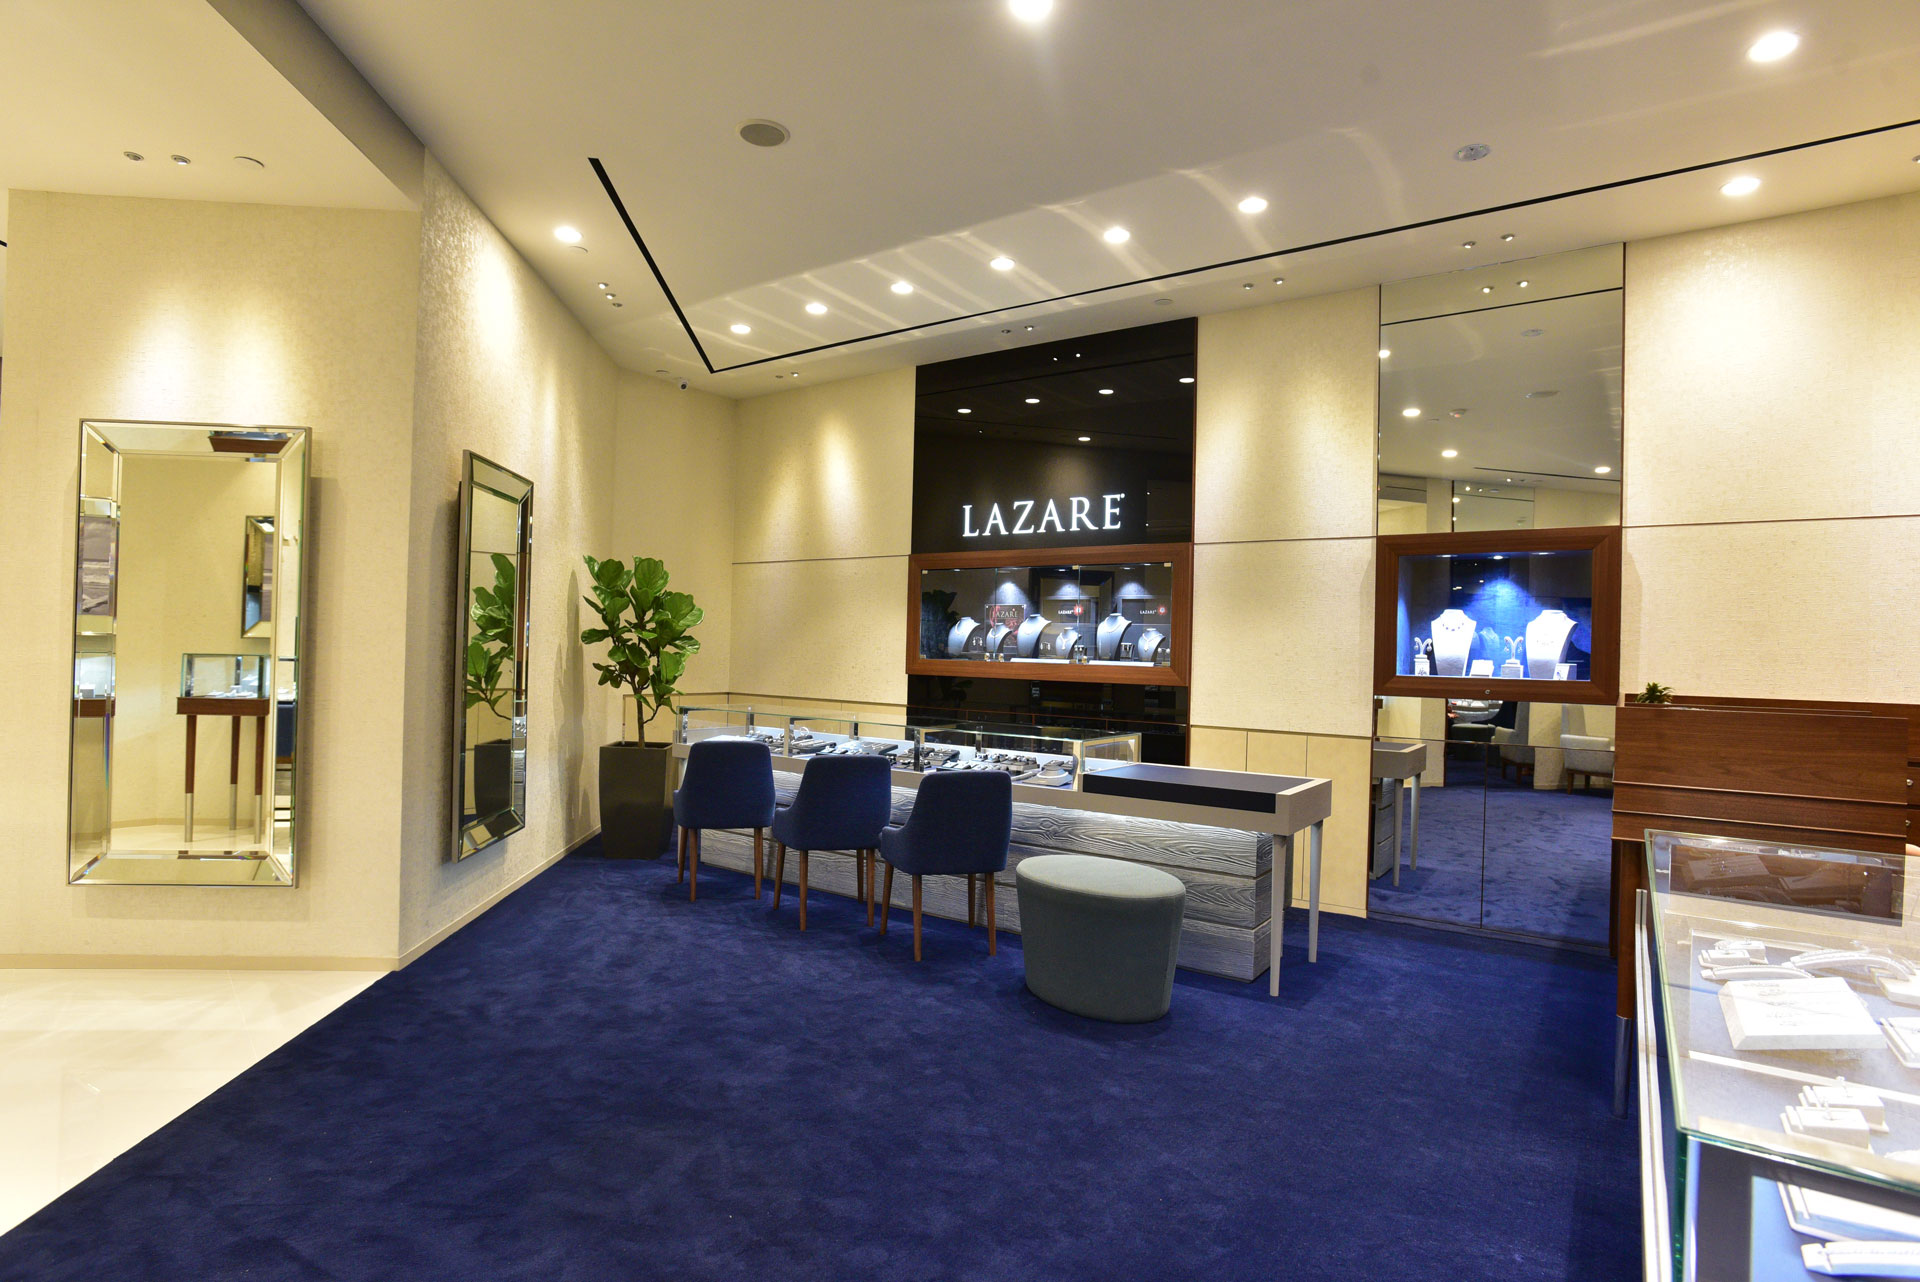 Larry Jewelry - ION Orchard Image 1